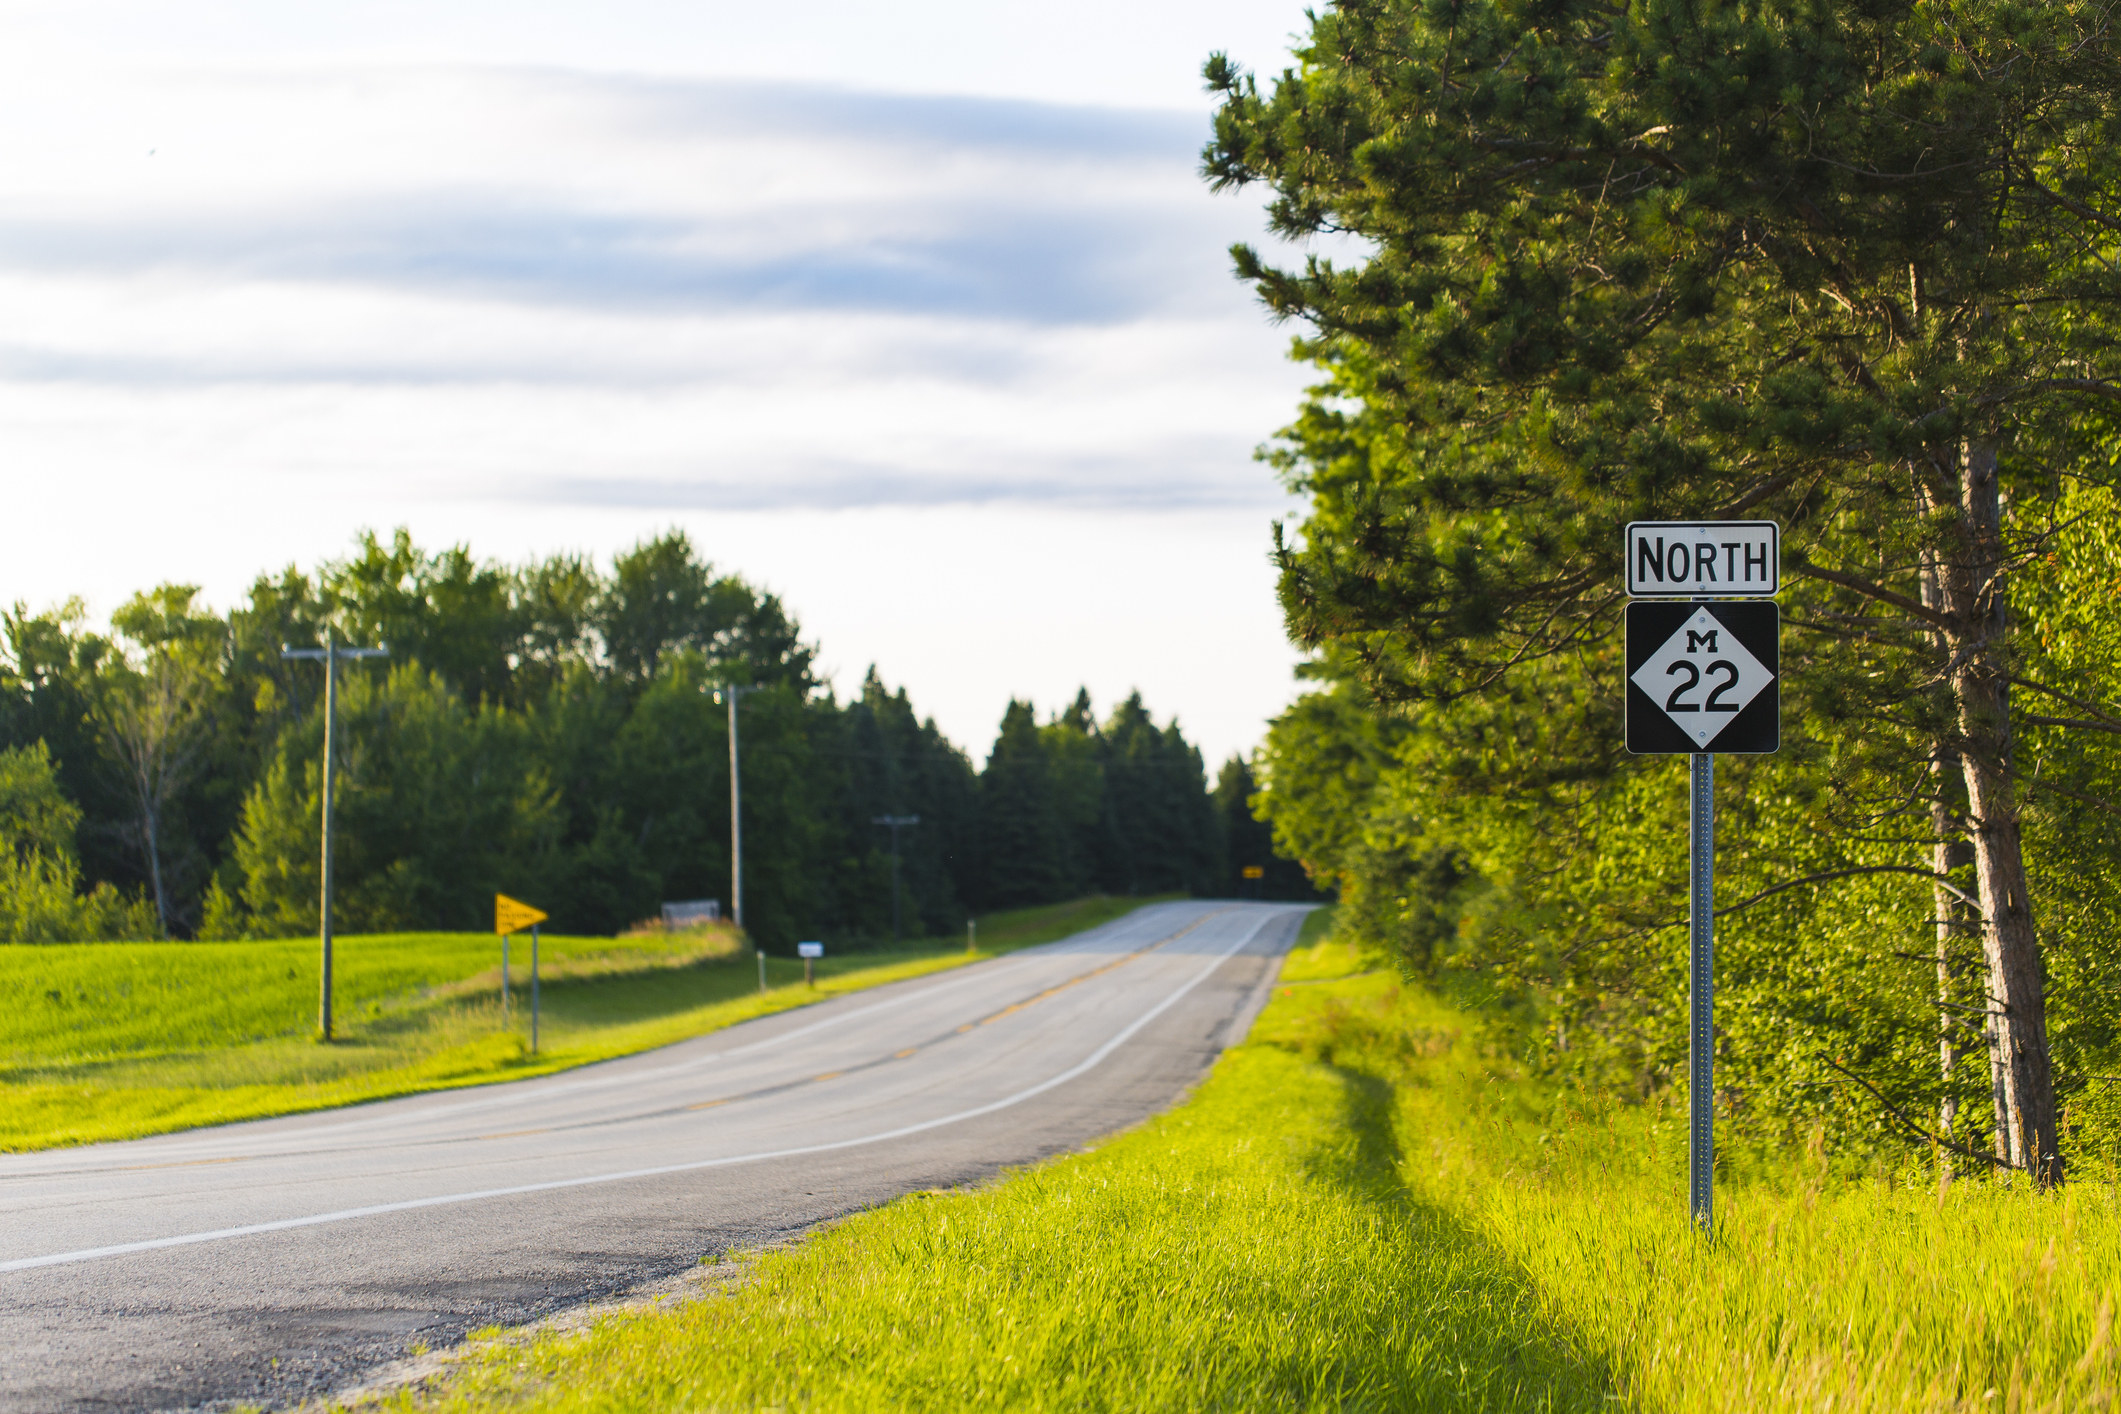 """long stretch of road surrounded by grass and trees with a sign reading """"north M22"""""""